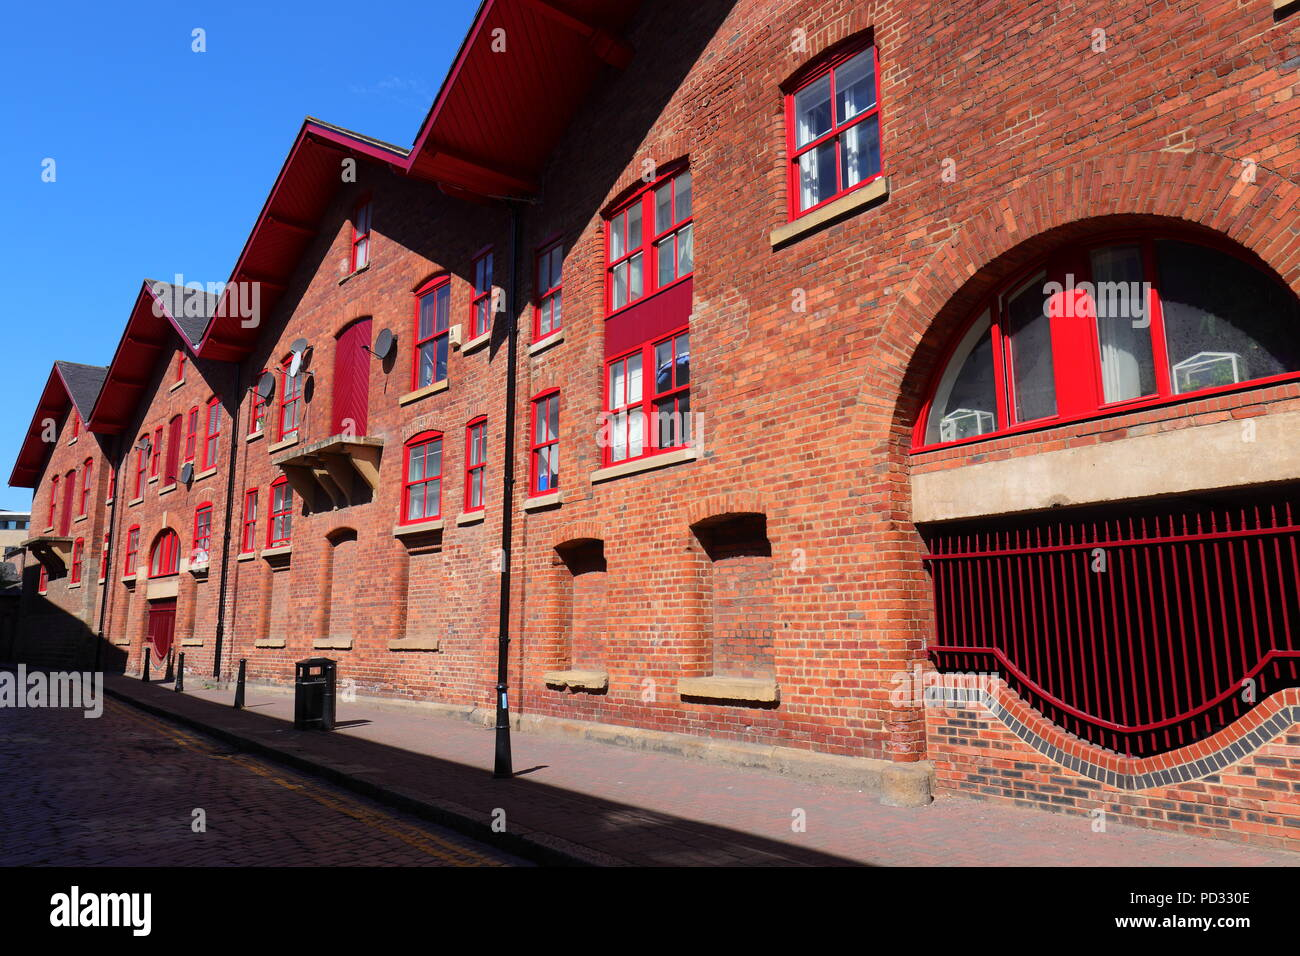 Apartments on Dock Street in Leeds City Centre - Stock Image